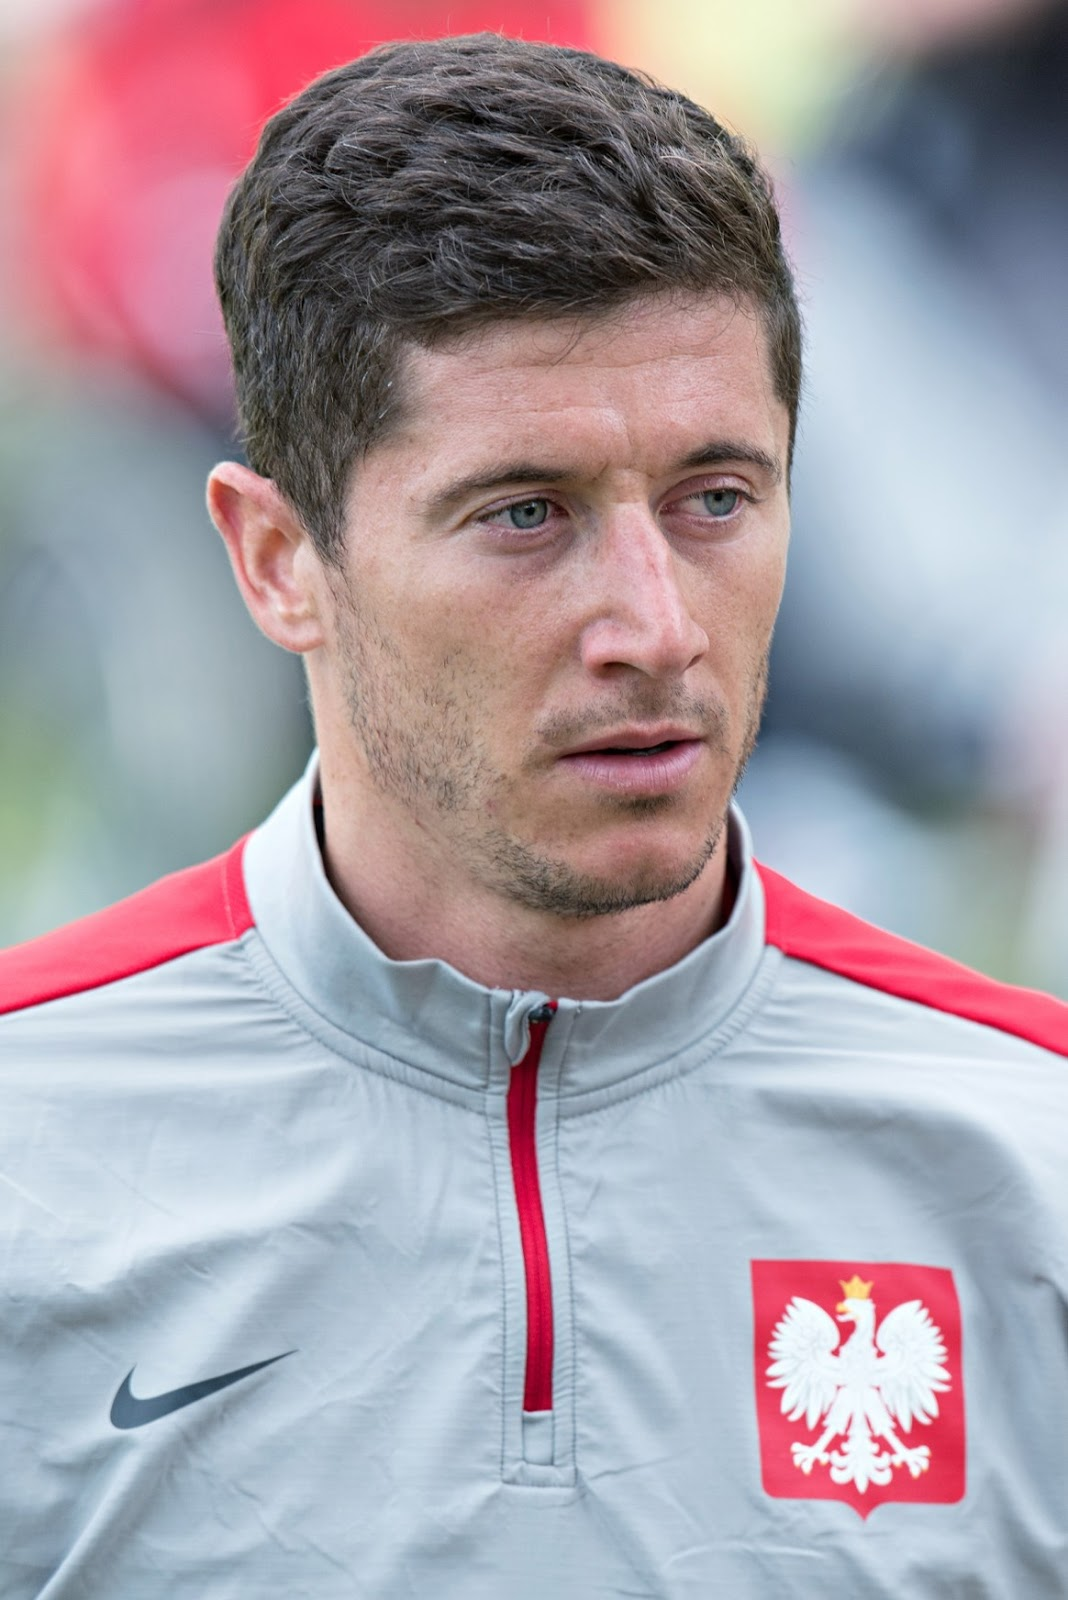 robert lewandowski fotoshooting